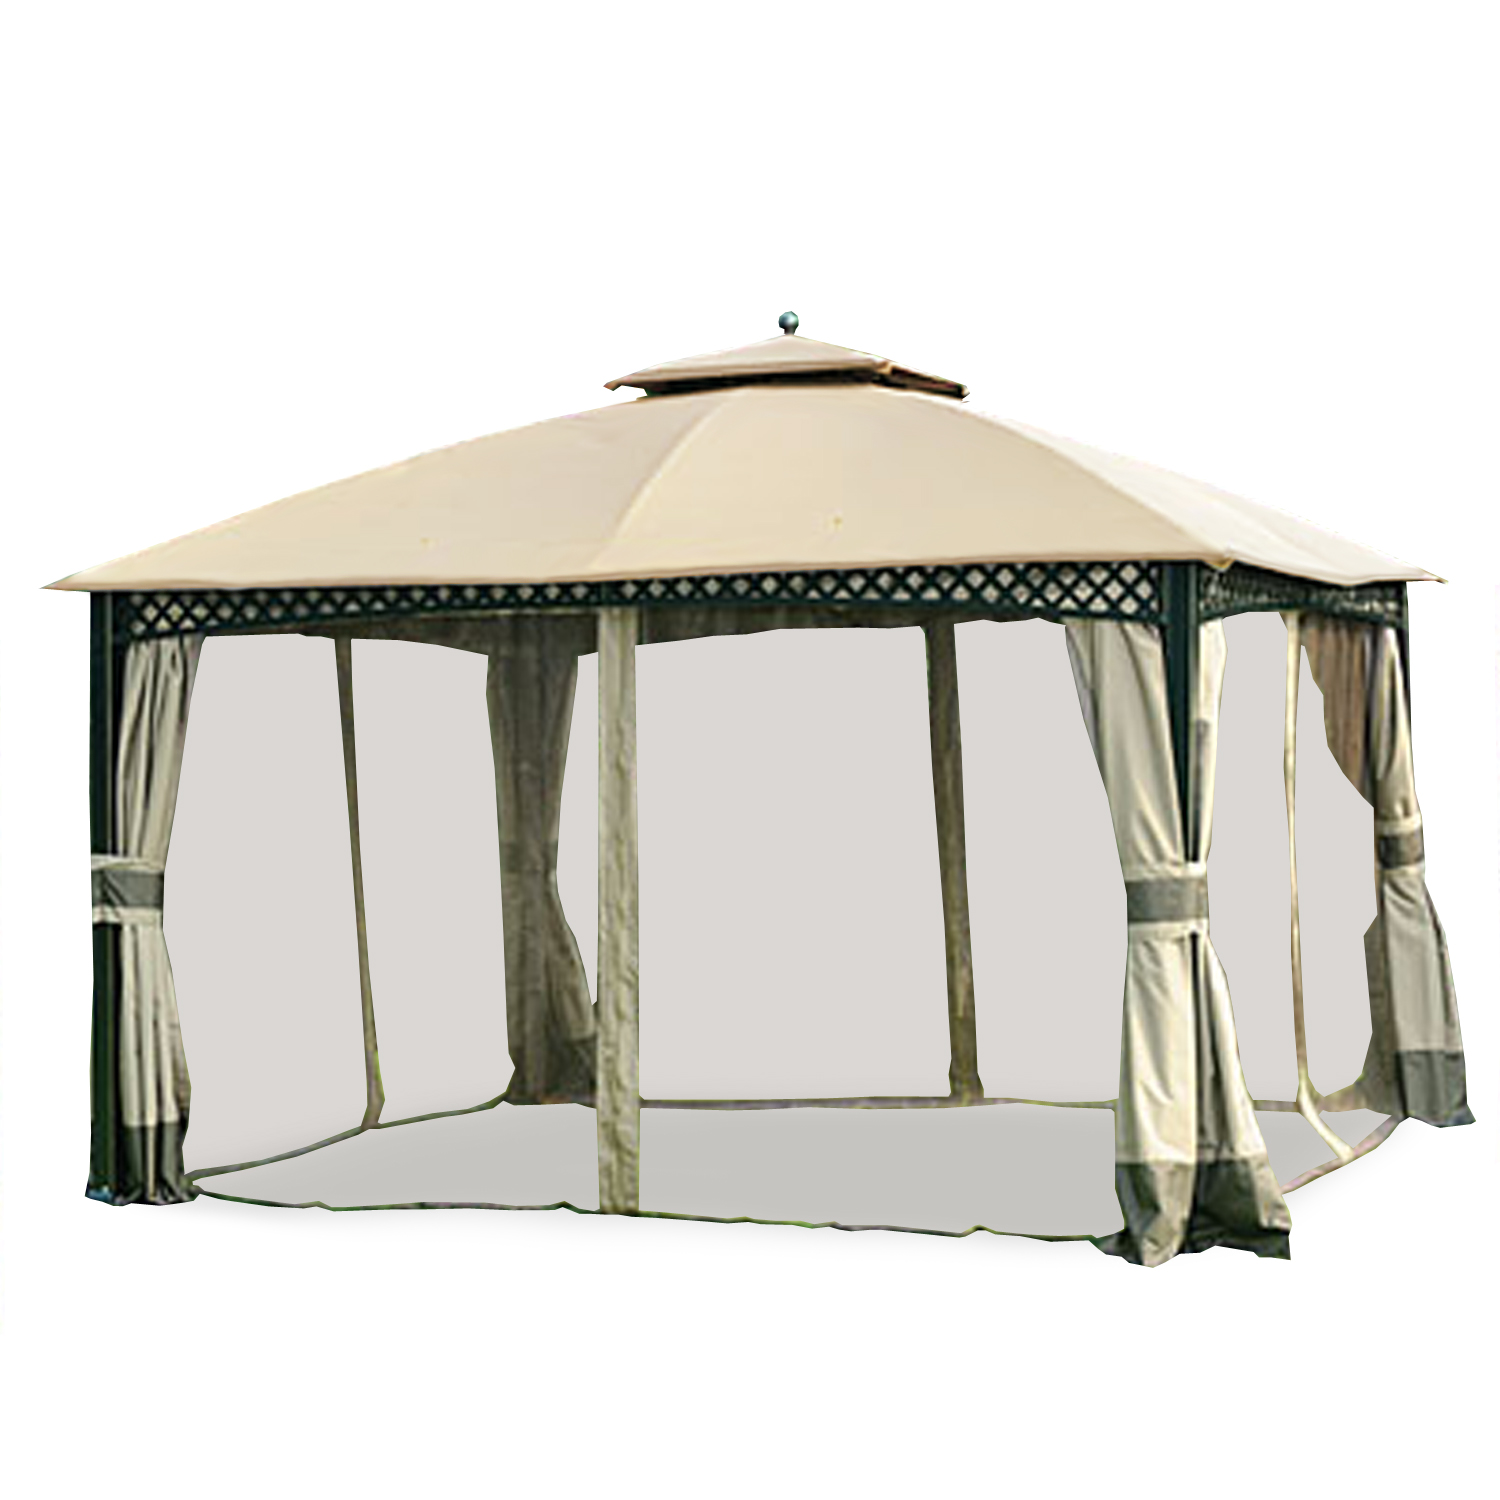 Garden Winds Replacement Canopy Top for Windsor Dome Gazebo, Riplock 350